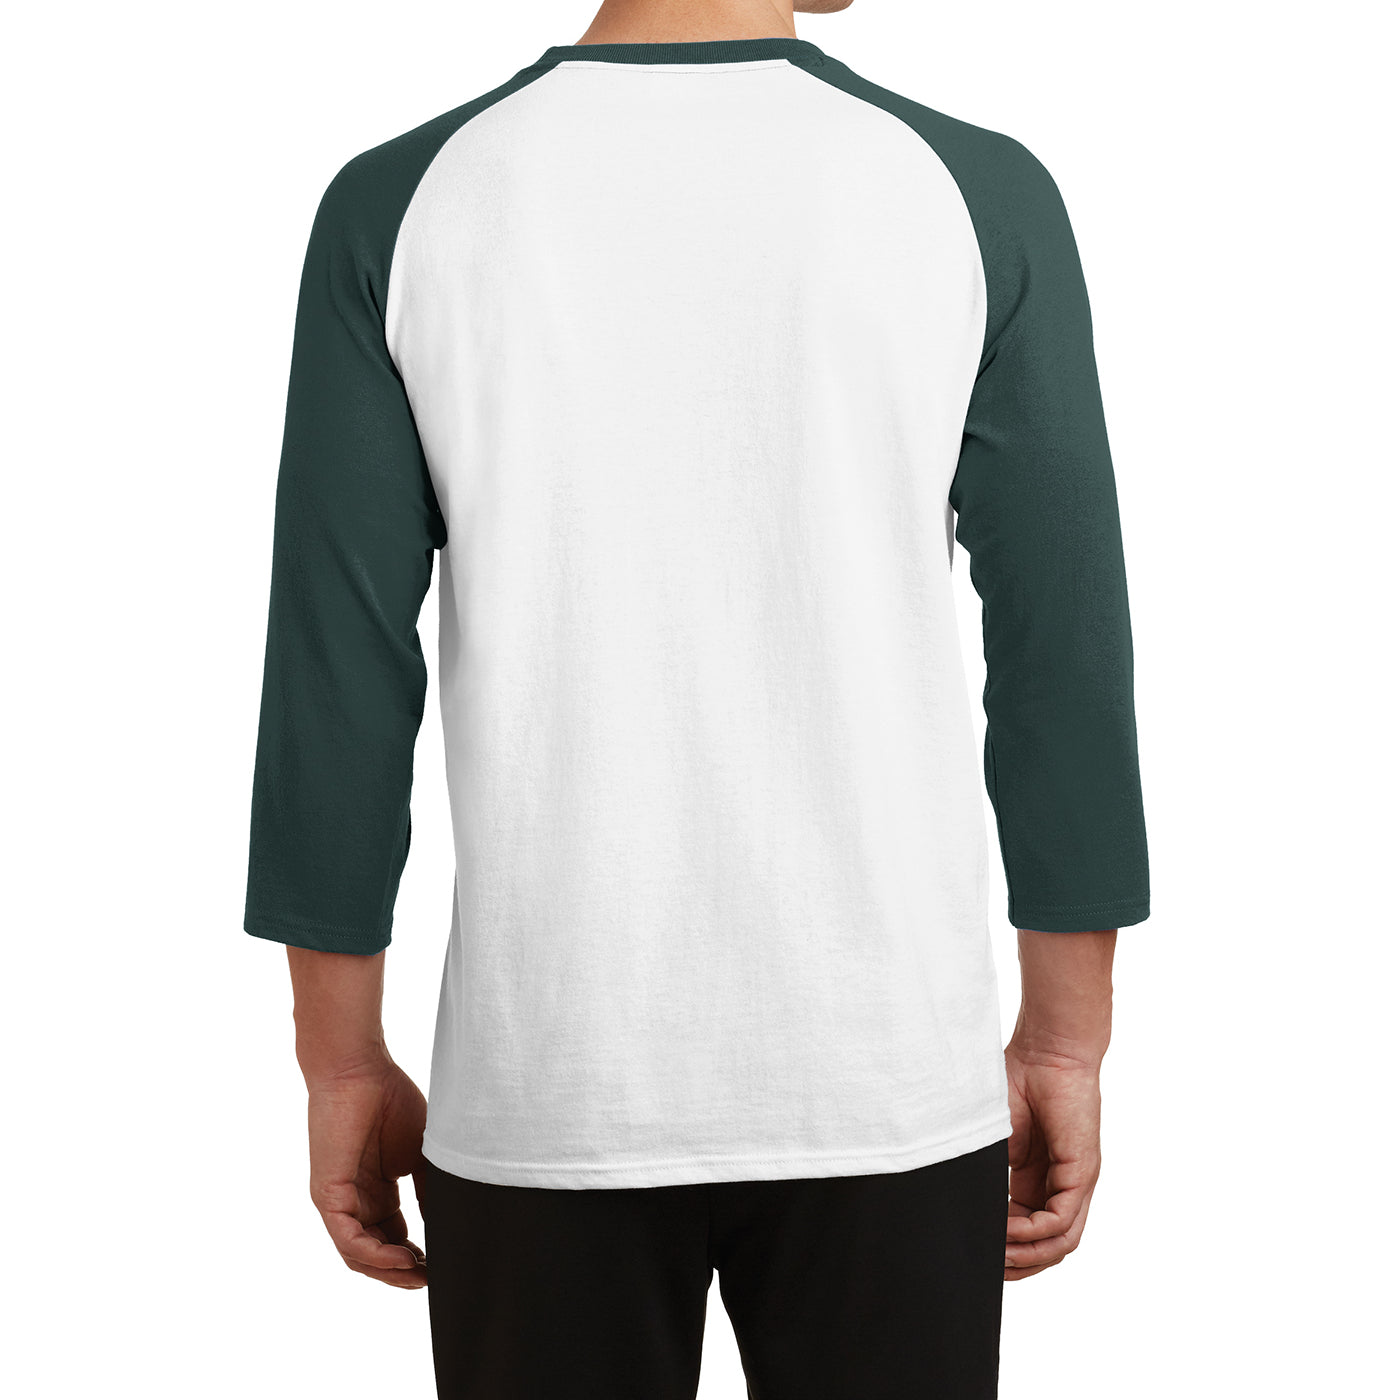 Men's Core Blend 3/4-Sleeve Raglan Tee -White/ Dark Green - Back